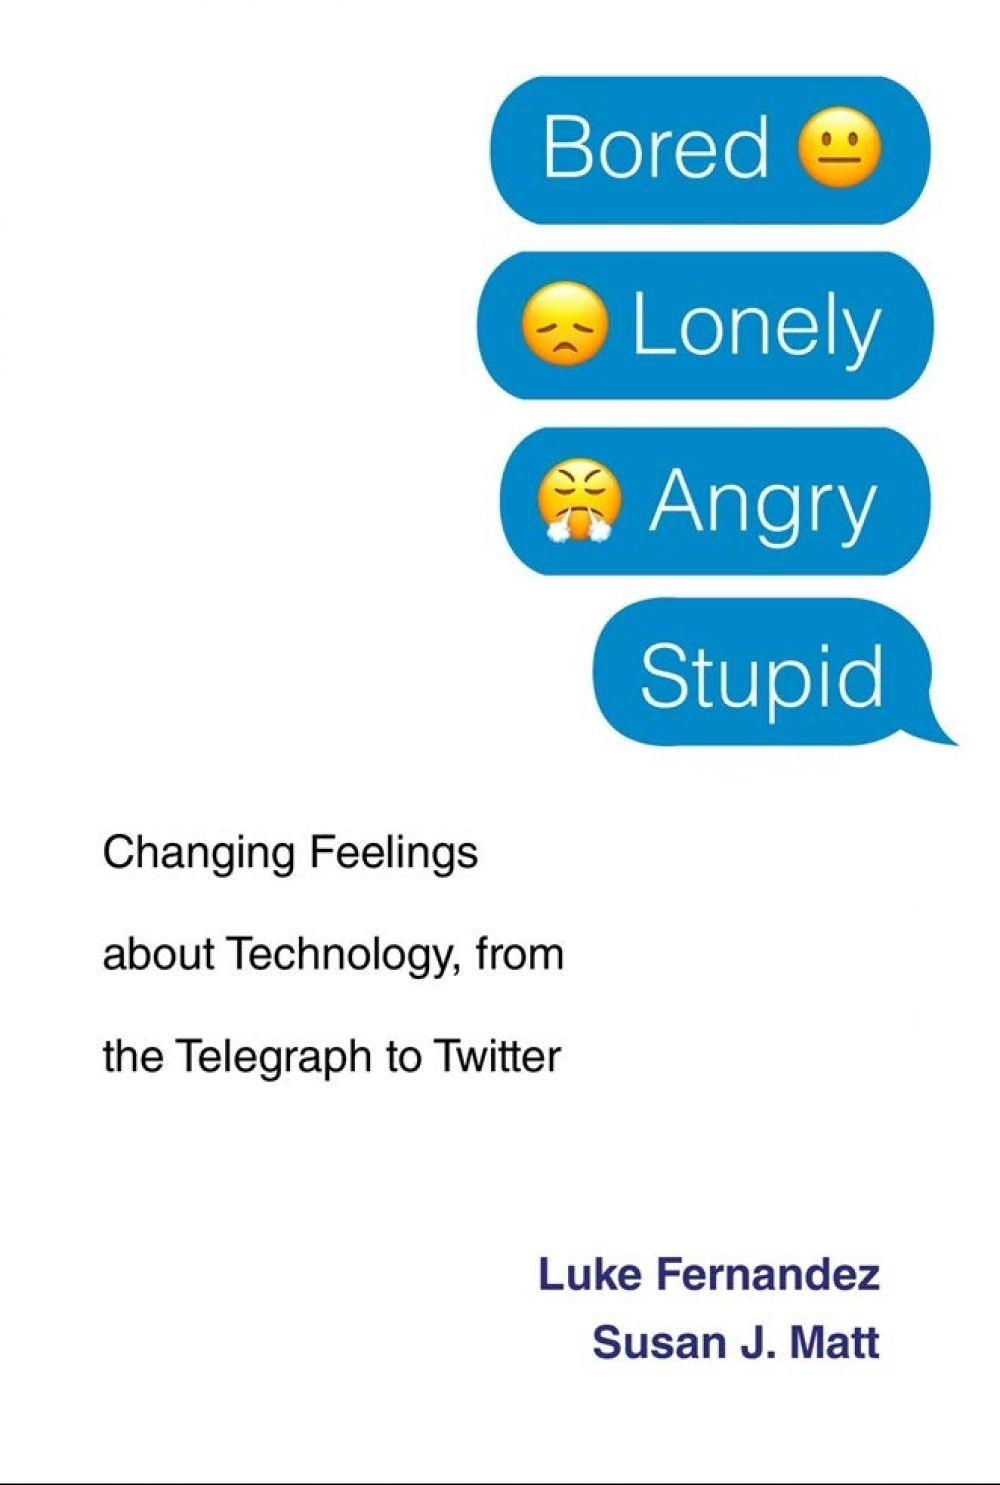 'Bored, Lonely, Angry, Stupid' by Luke Fernandez and Susan J. Matt